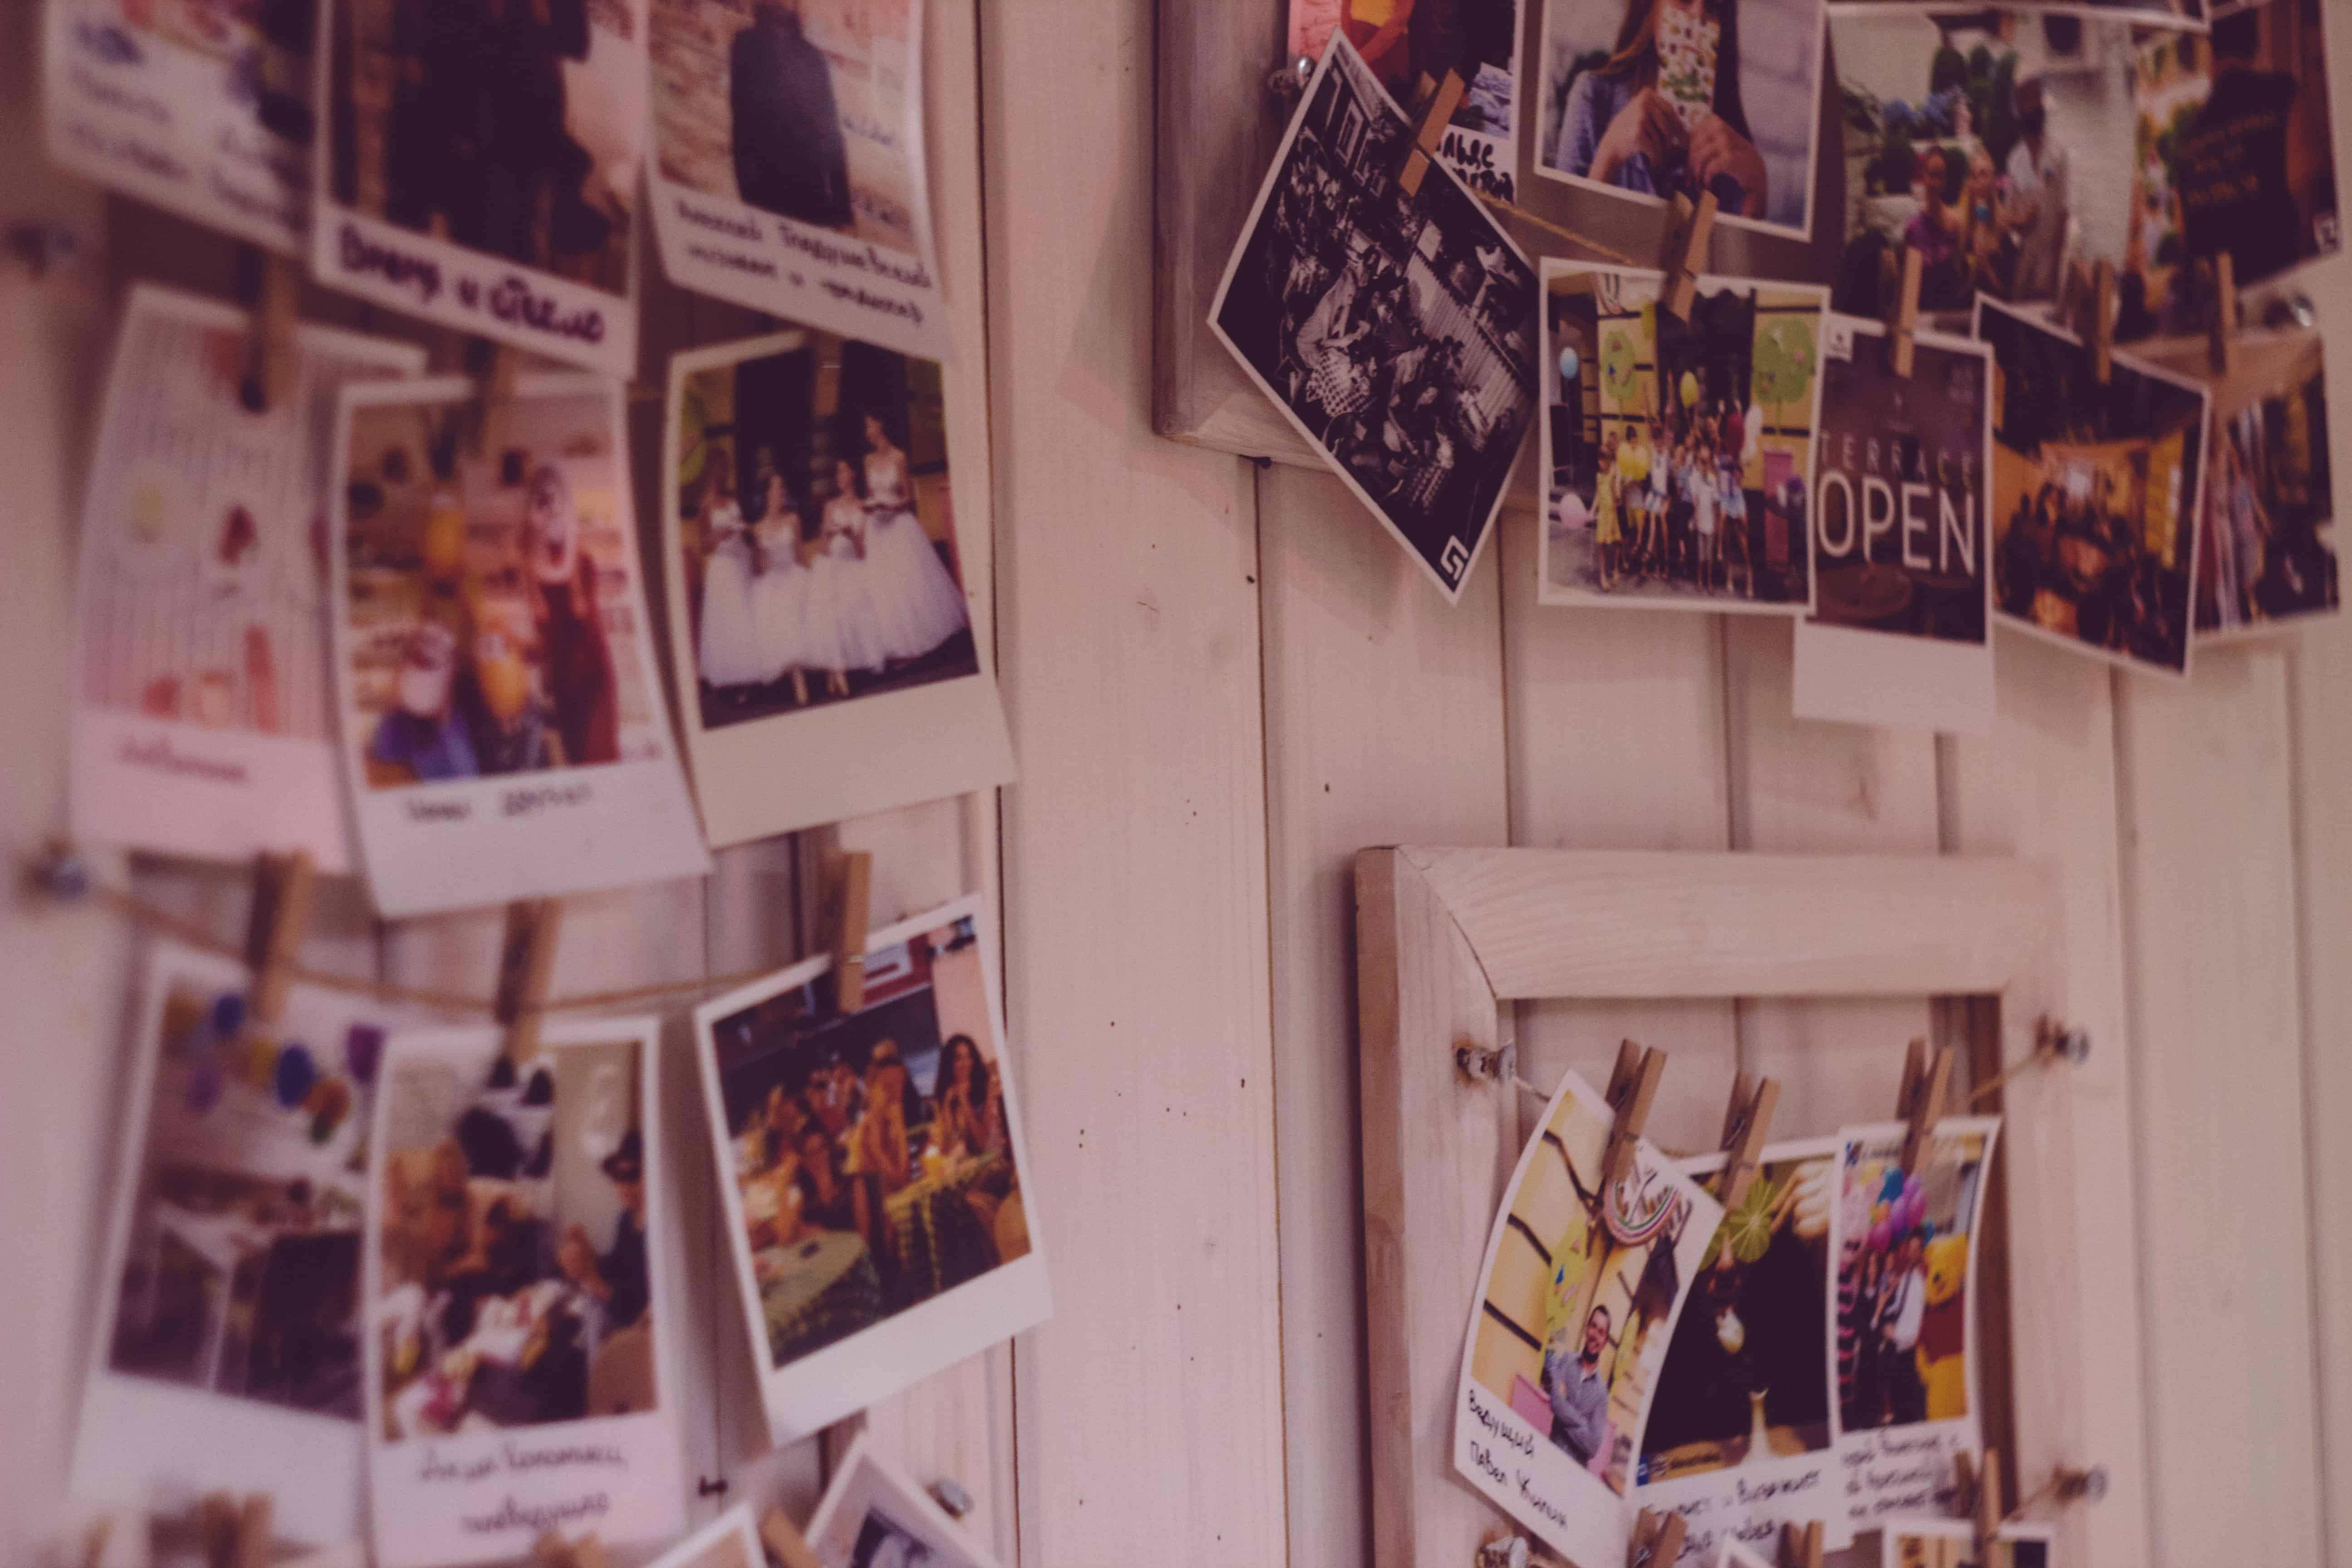 Polaroid photos hang in a collage with wooden clips and string